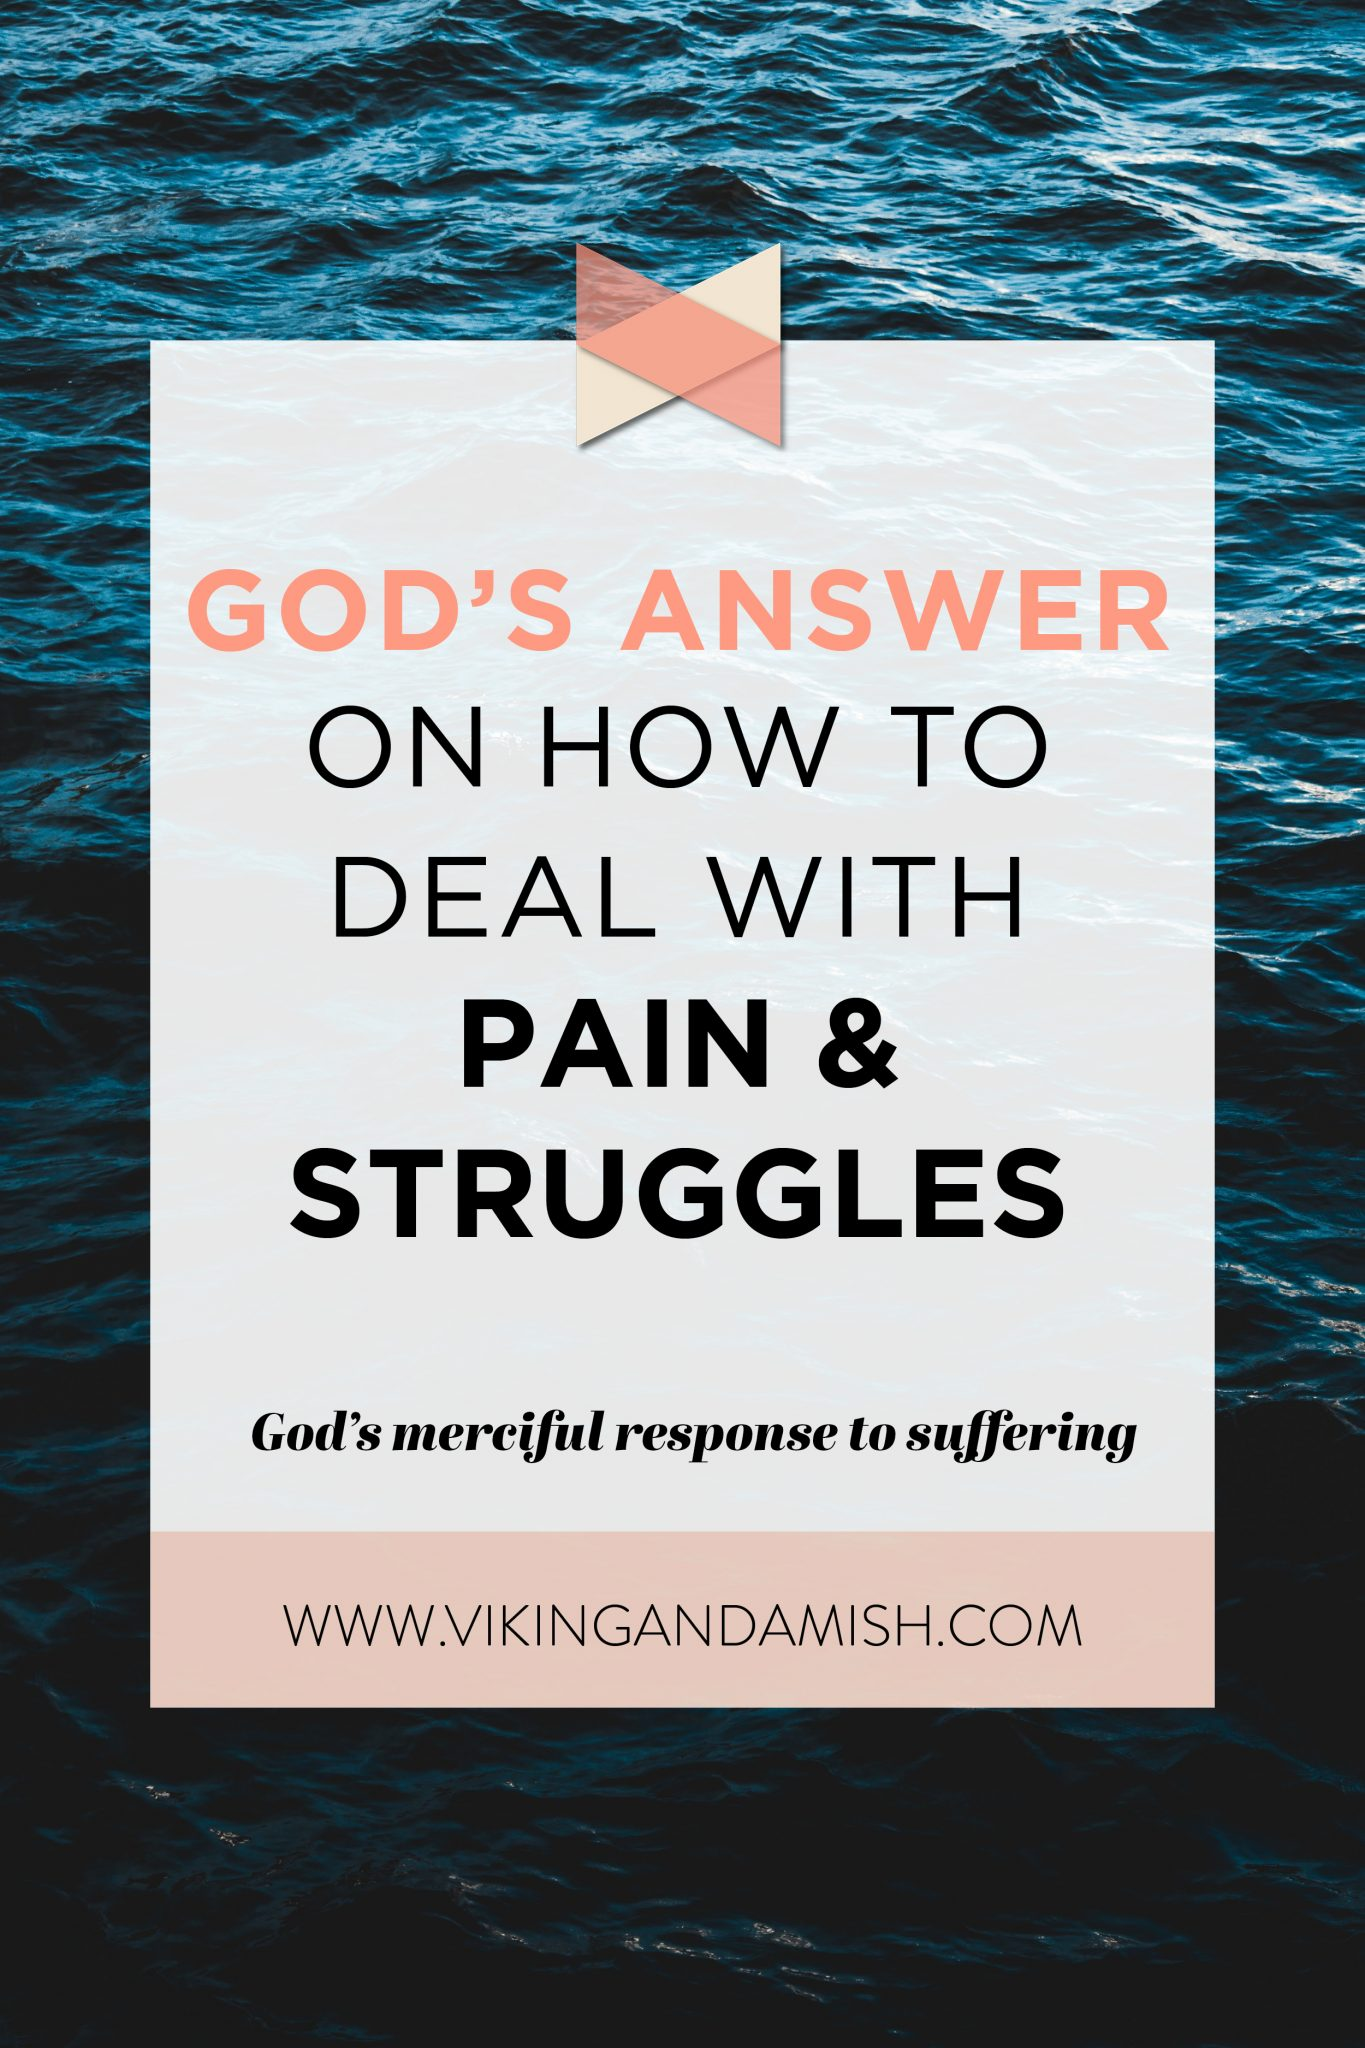 Although part of every human experience, it can still be overwhelming to deal with pain and struggles. This post is a response rooted in Biblical truth | www.vikingandamish.com